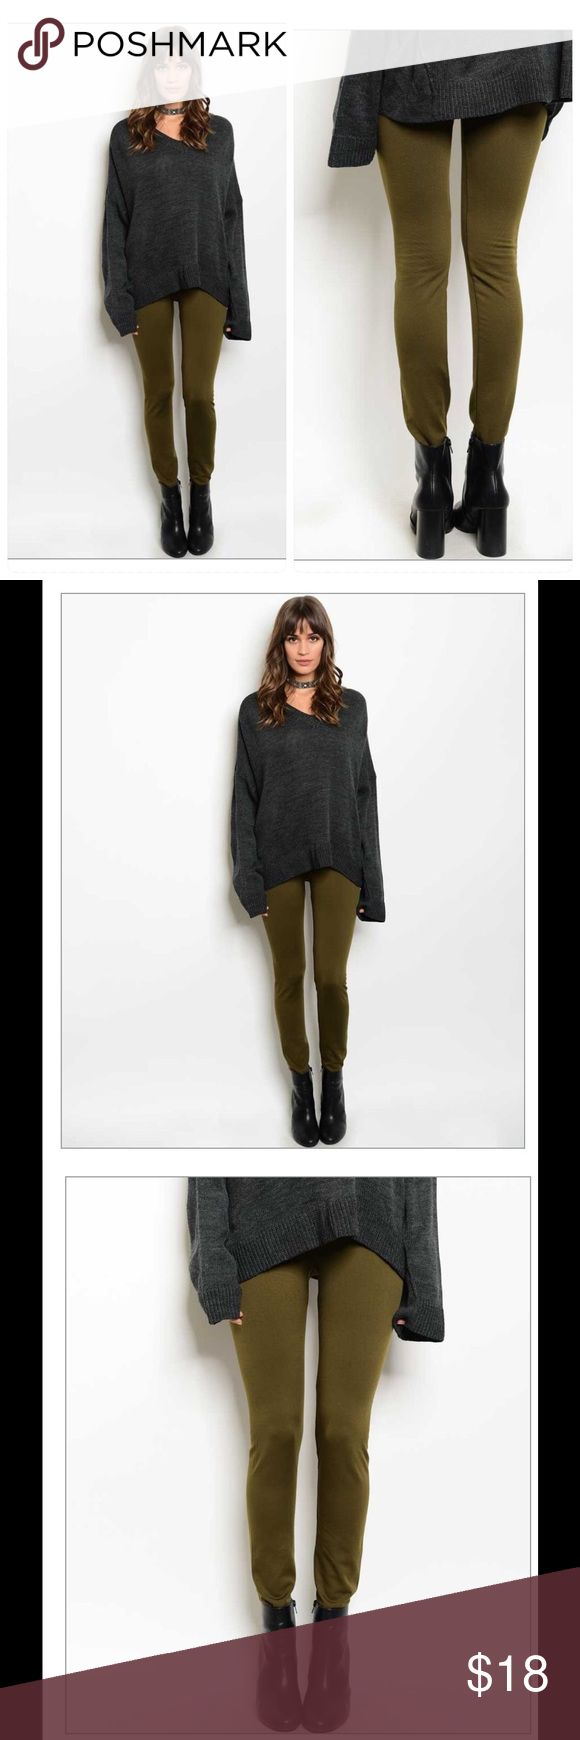 """NWT olive fleece leggings Beautiful olive fleece legging with a high waist for super comfort  Fabric Content: 92% NYLON 8% SPANDEX Size Scale: ONE SIZE  Description: L: 22"""" W: 37"""" I.S.: 26"""" Pants Leggings"""